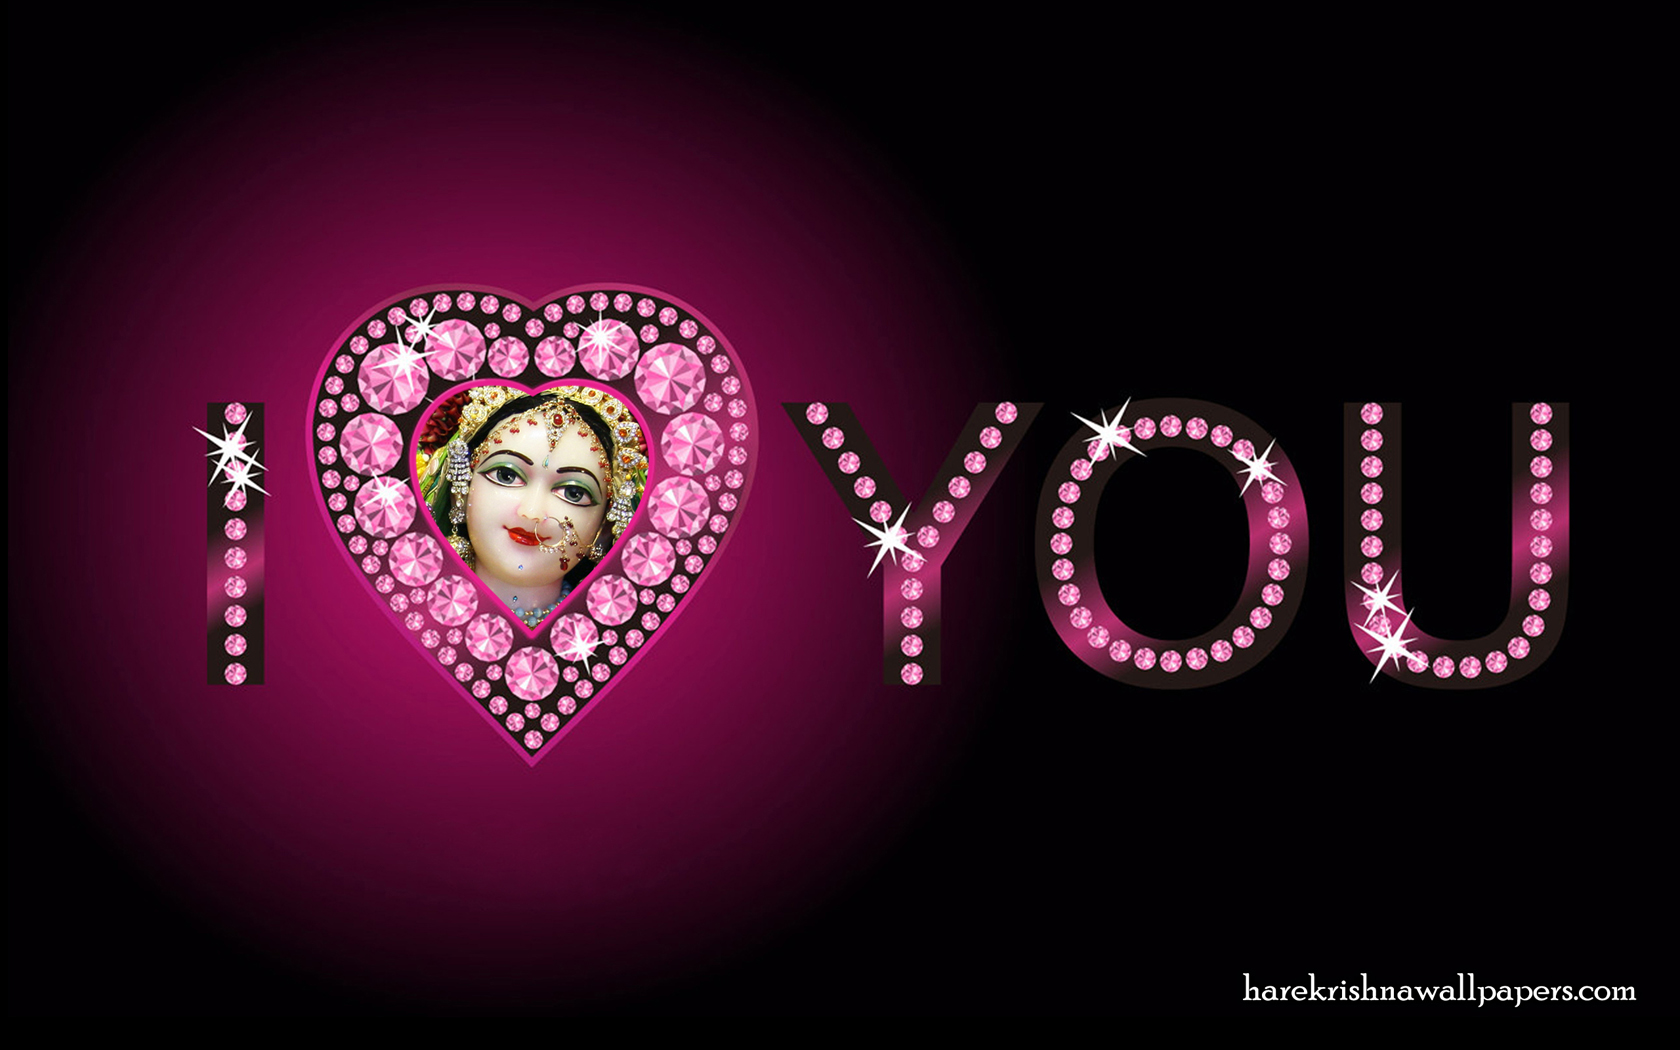 I Love You Radharani Wallpaper (015) Size 1680x1050 Download